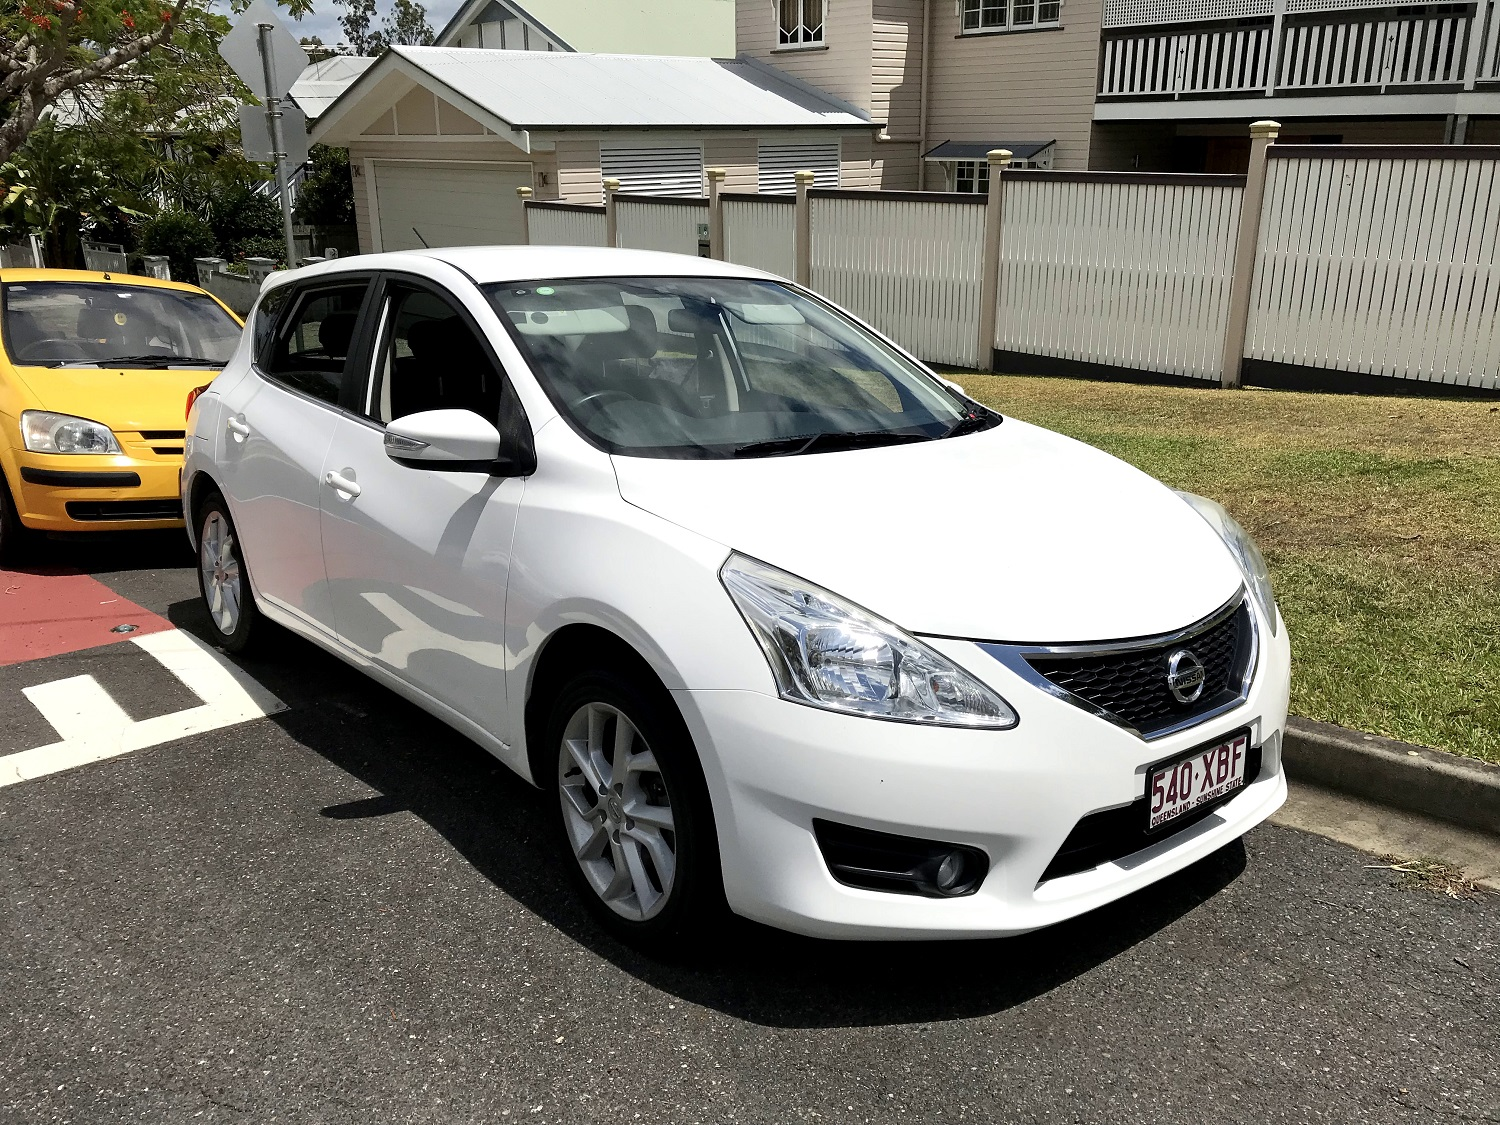 Picture of Bettina's 2013 Nissan Pulsar